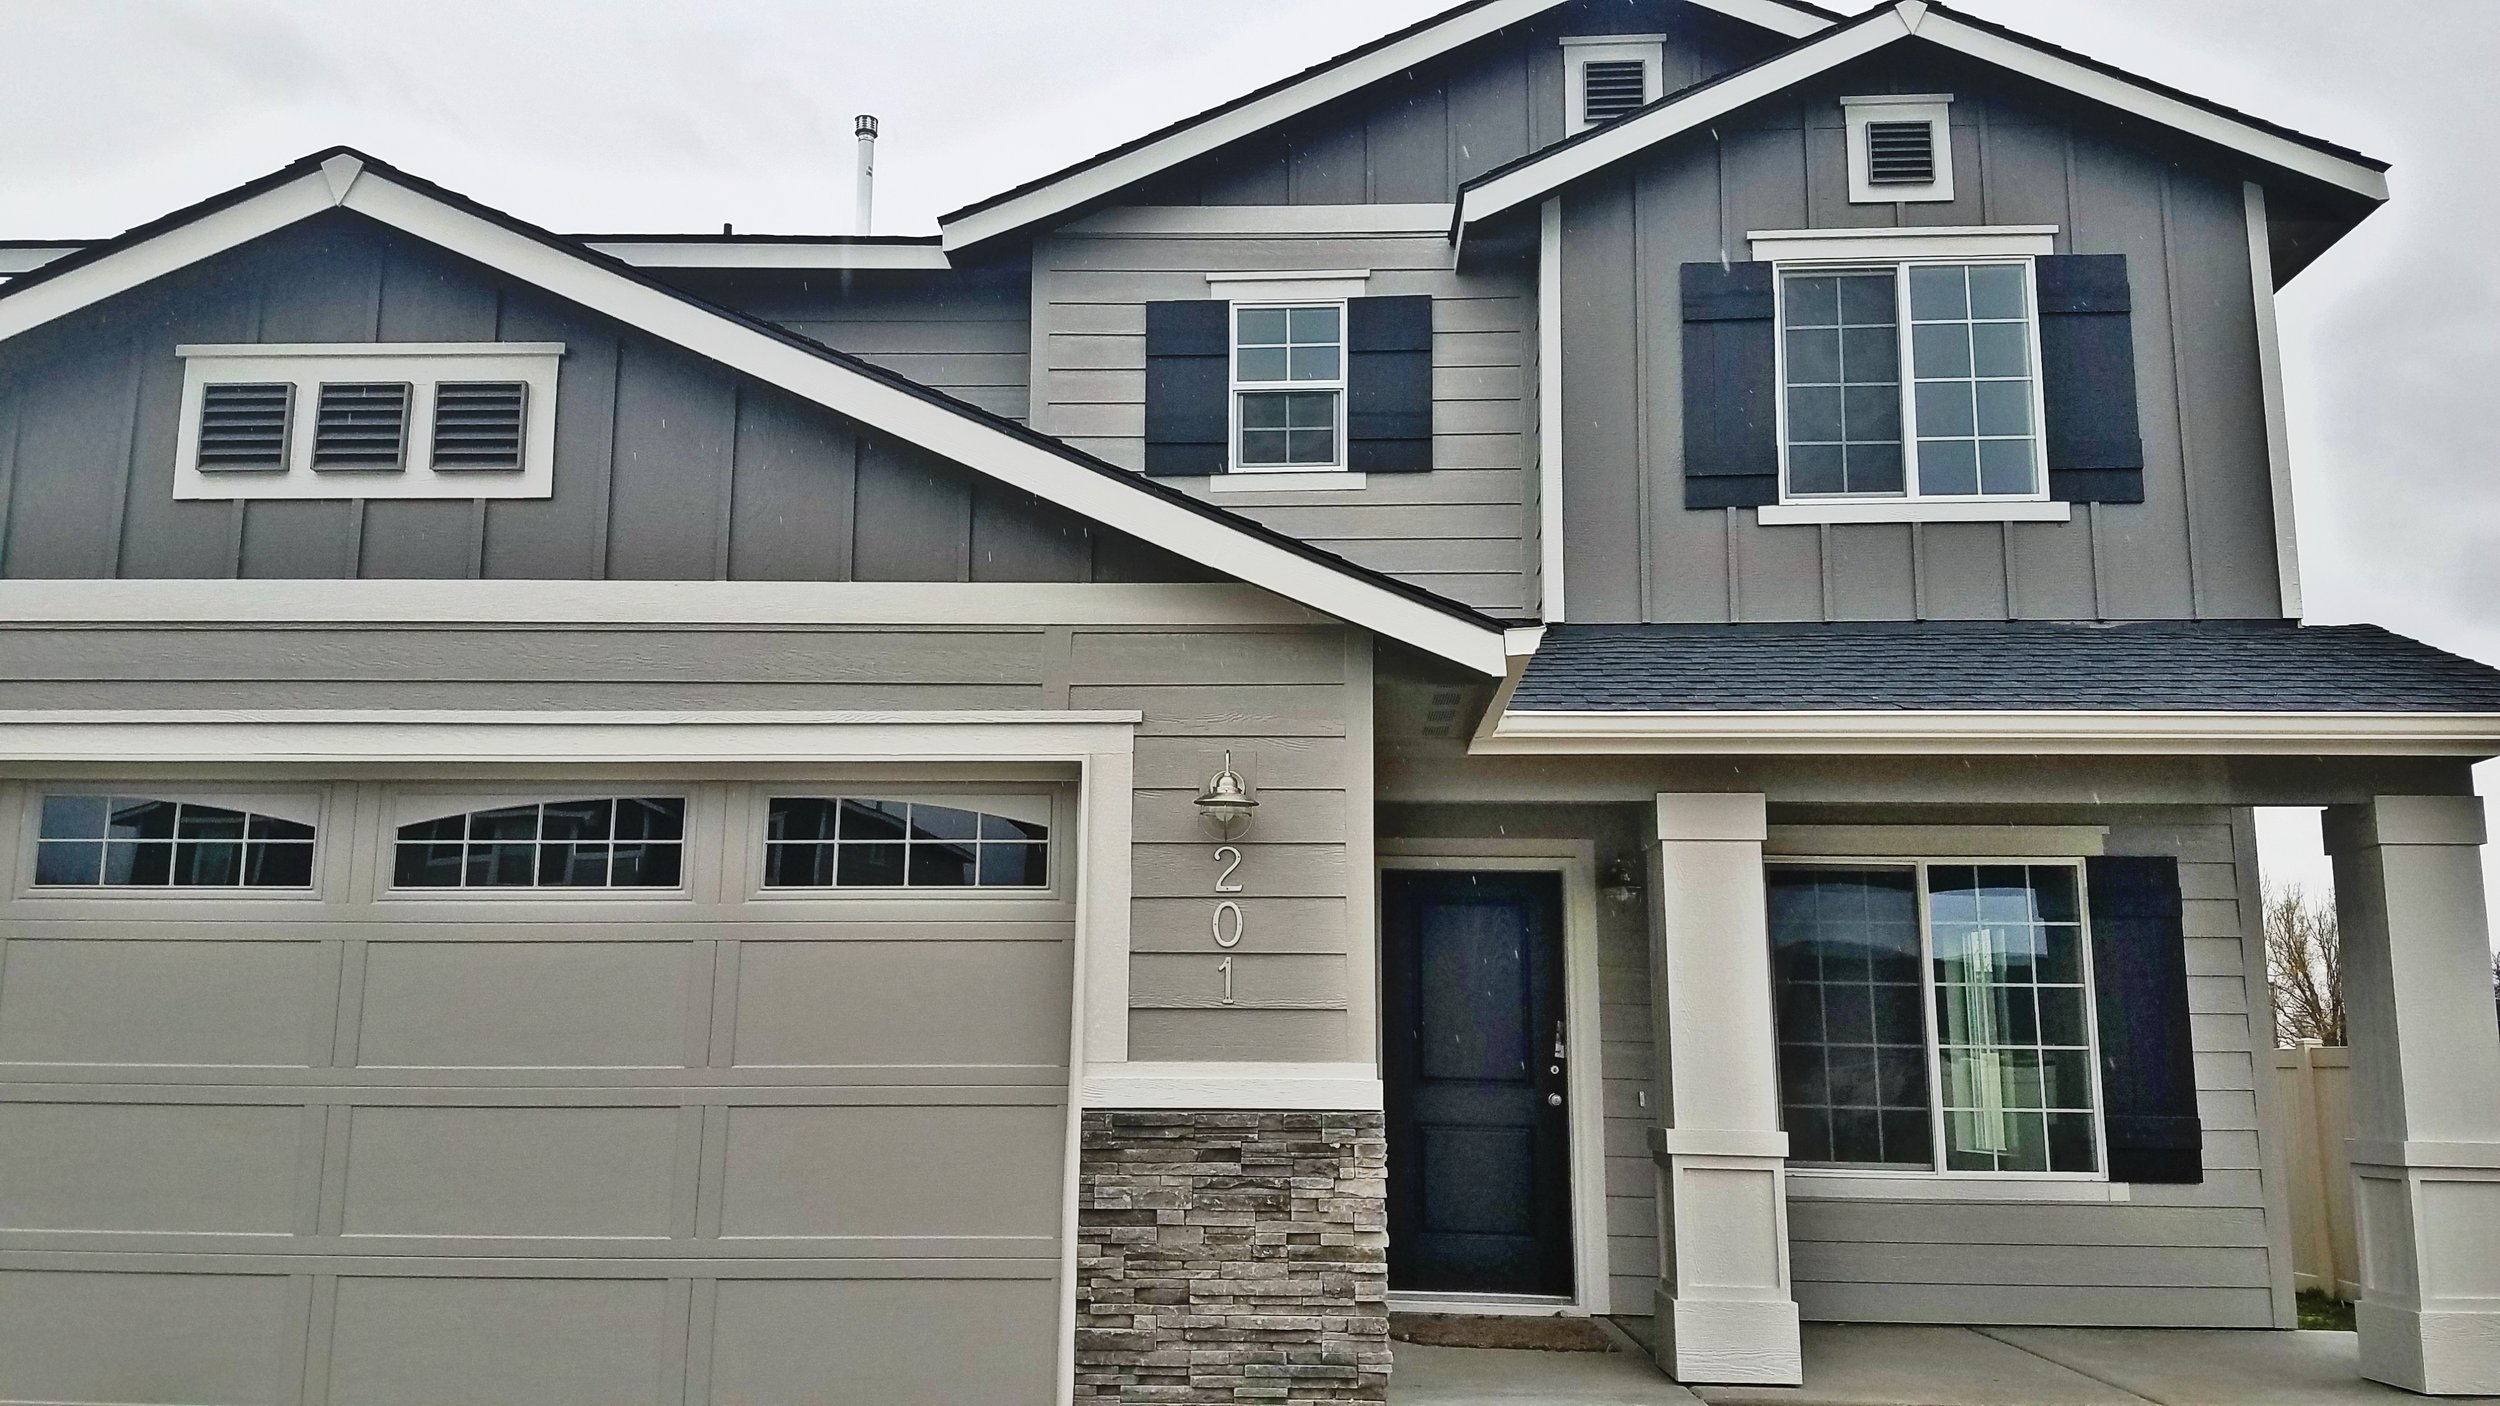 New Construction with $5,000 in EQUITY!